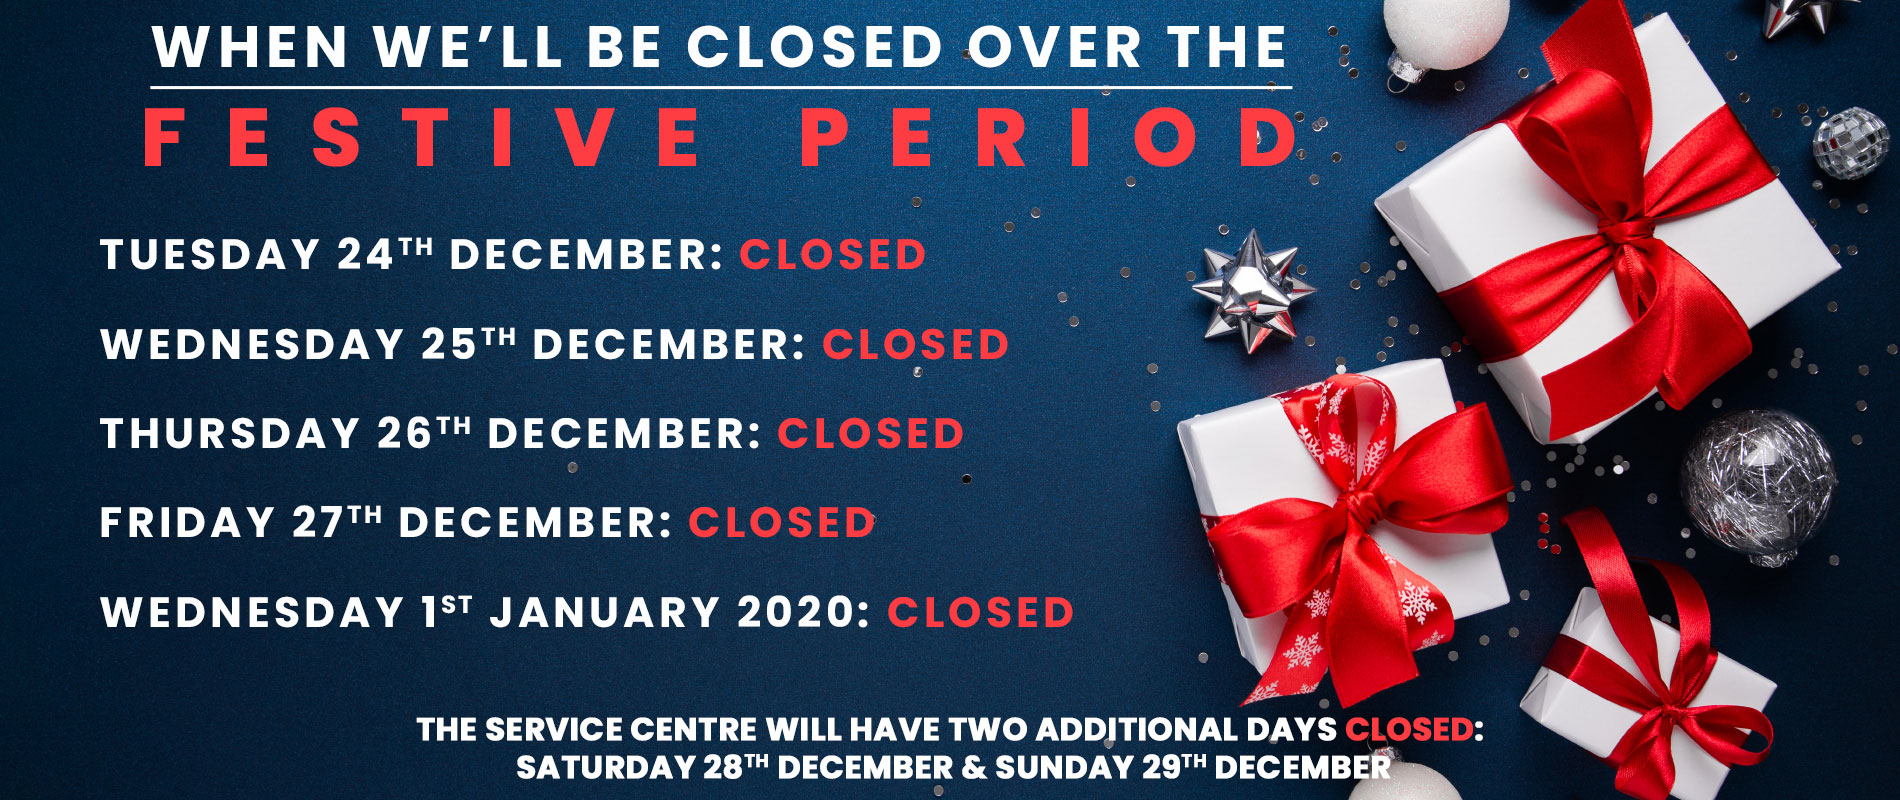 Festive Period Opening/Closed Days